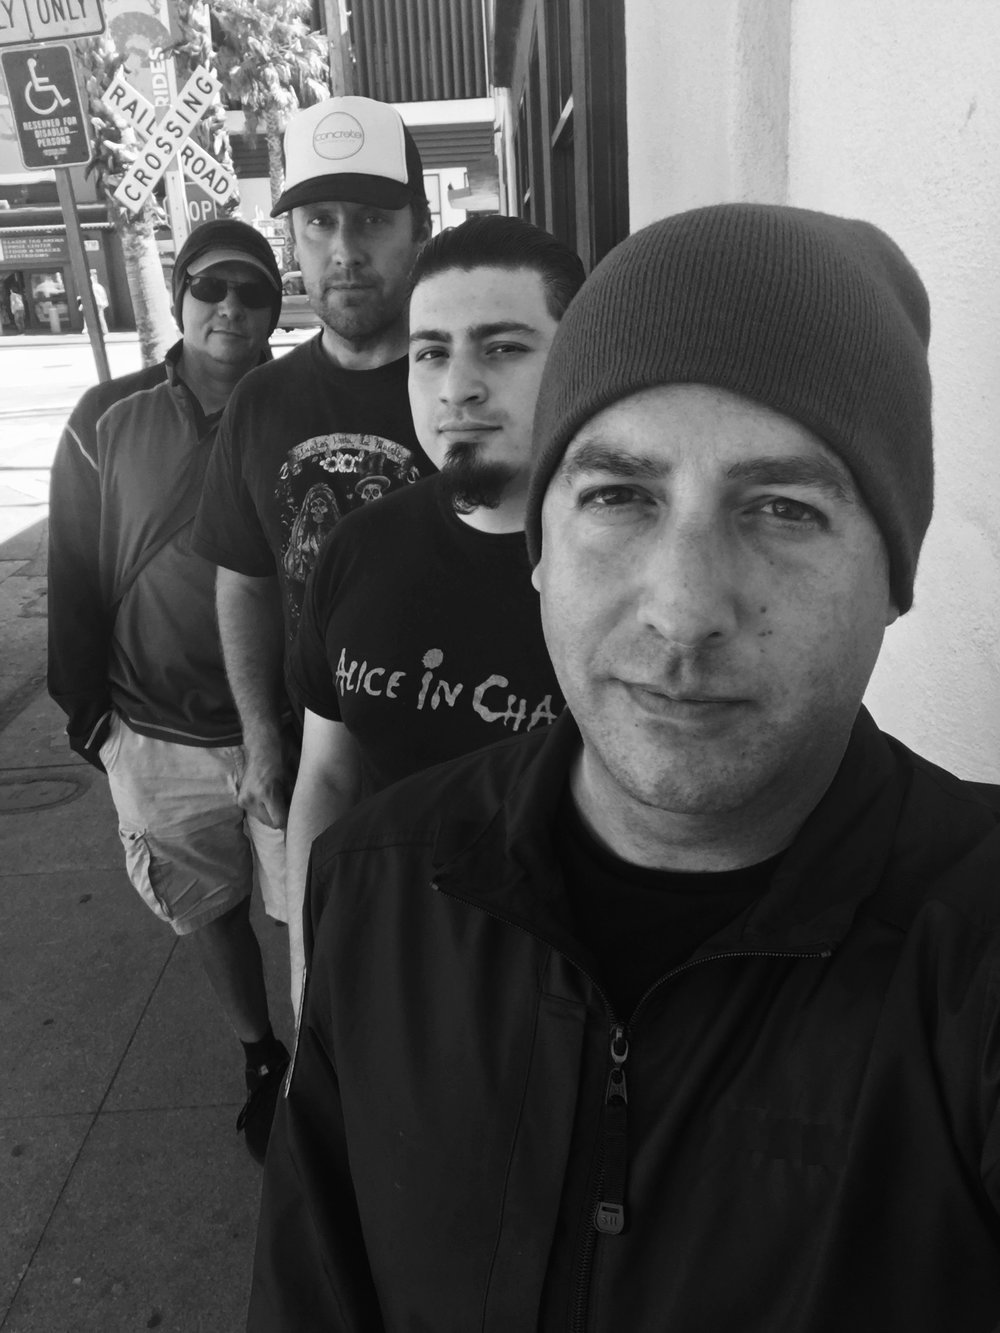 Press Pic. Front to back: Thomas Monroe - Vocals, John Castellon - Guitar, Steve Shell - Bass, Steve Ybarra - Drums